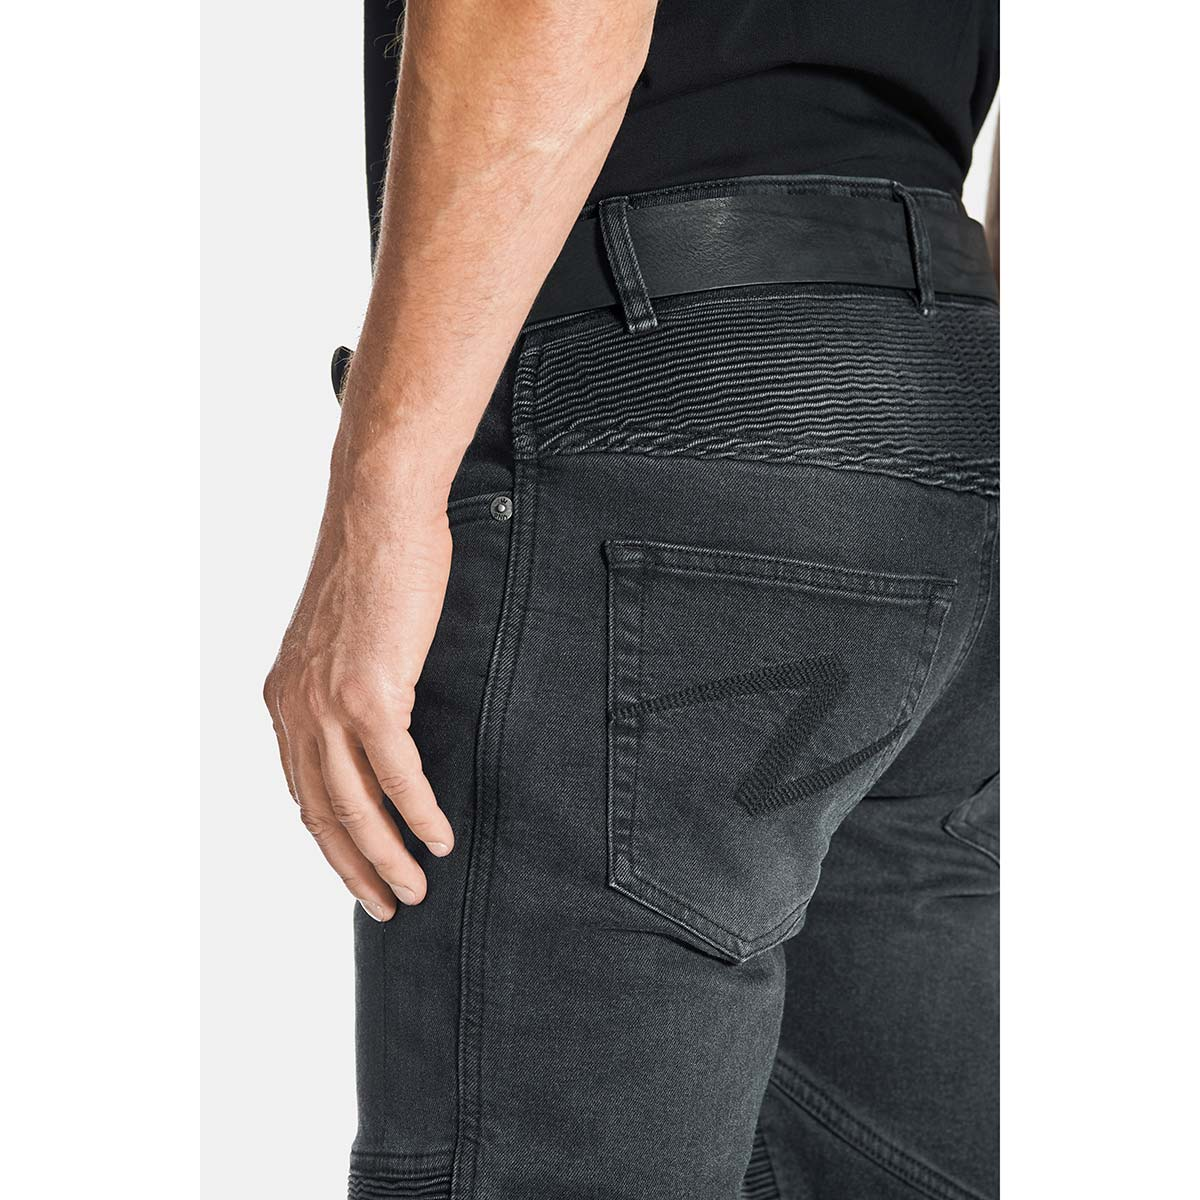 Pando Moto Karl Devil 9 Men's Jeans